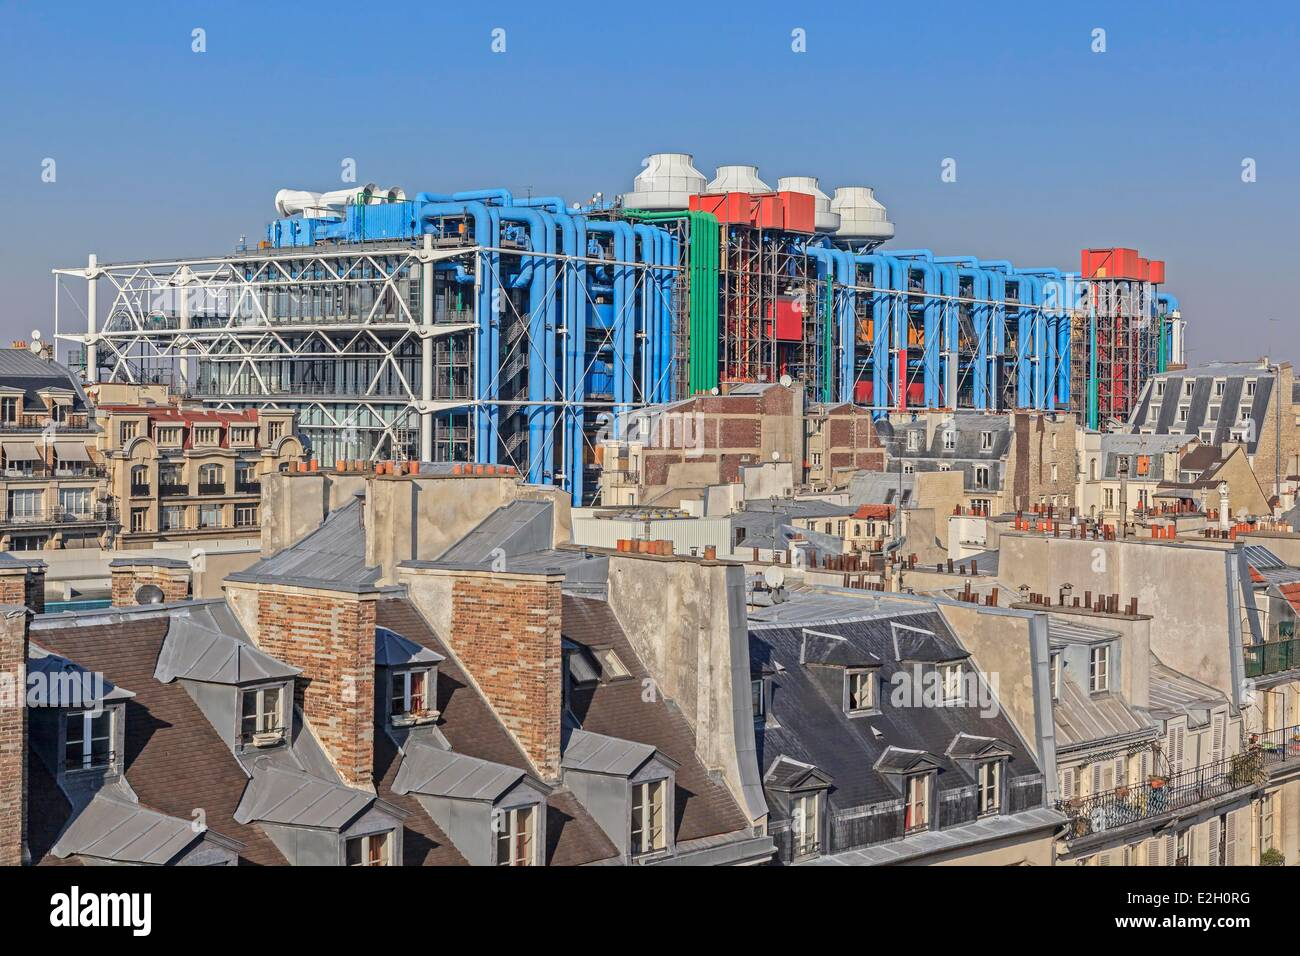 france paris pompidou center by architects renzo piano richard rogers stock photo royalty free. Black Bedroom Furniture Sets. Home Design Ideas